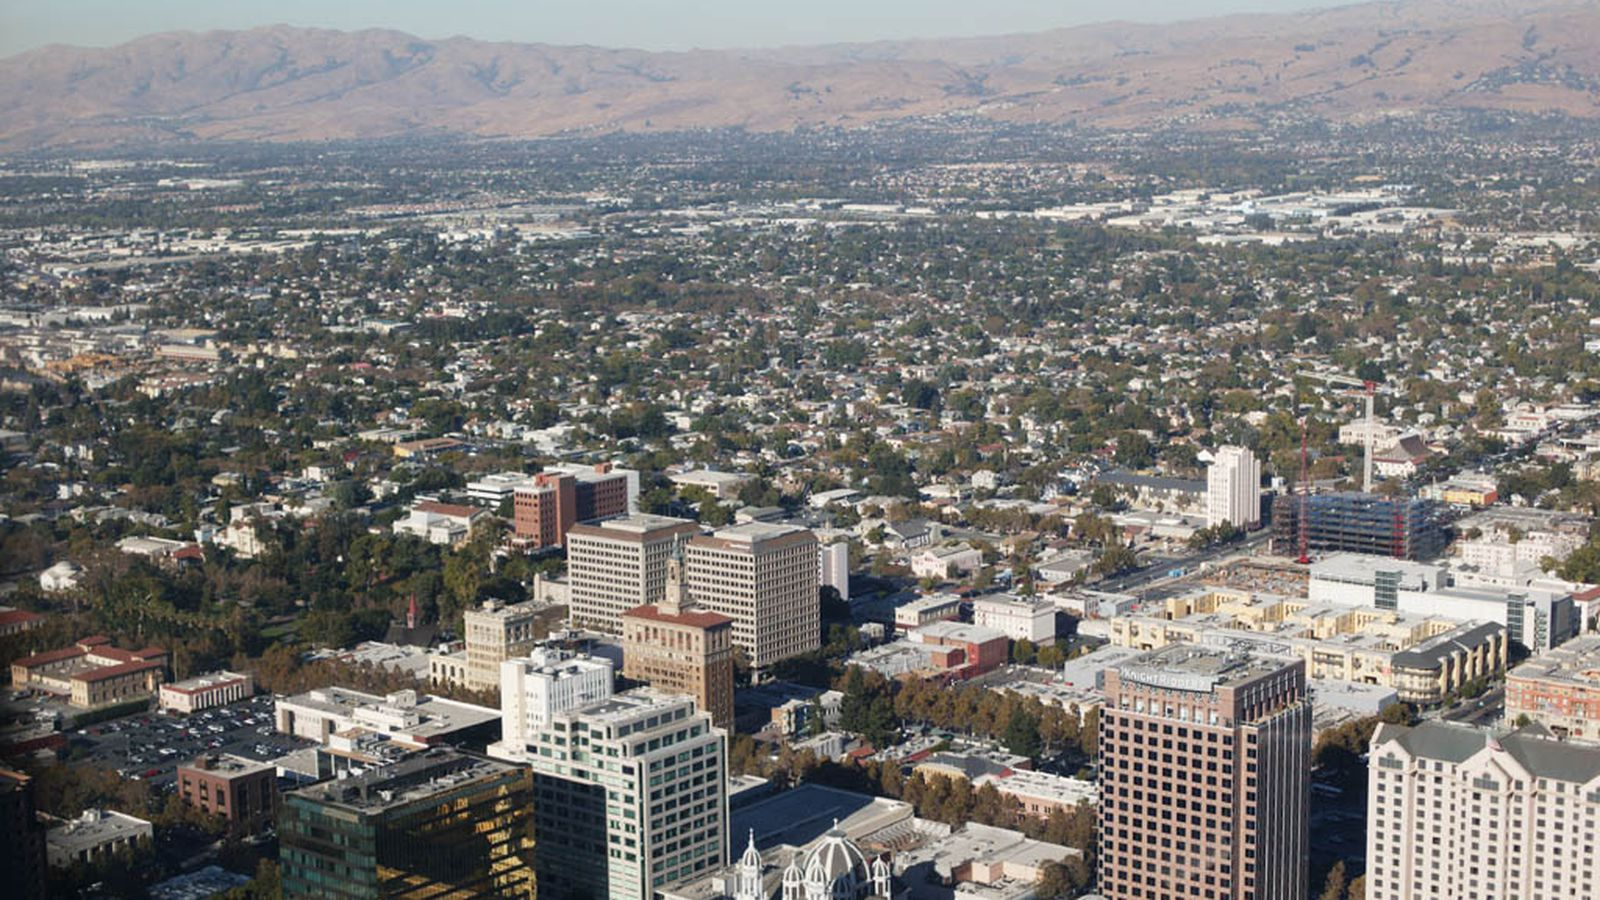 Silicon Valleys Ultimate Exit Secession From The United States